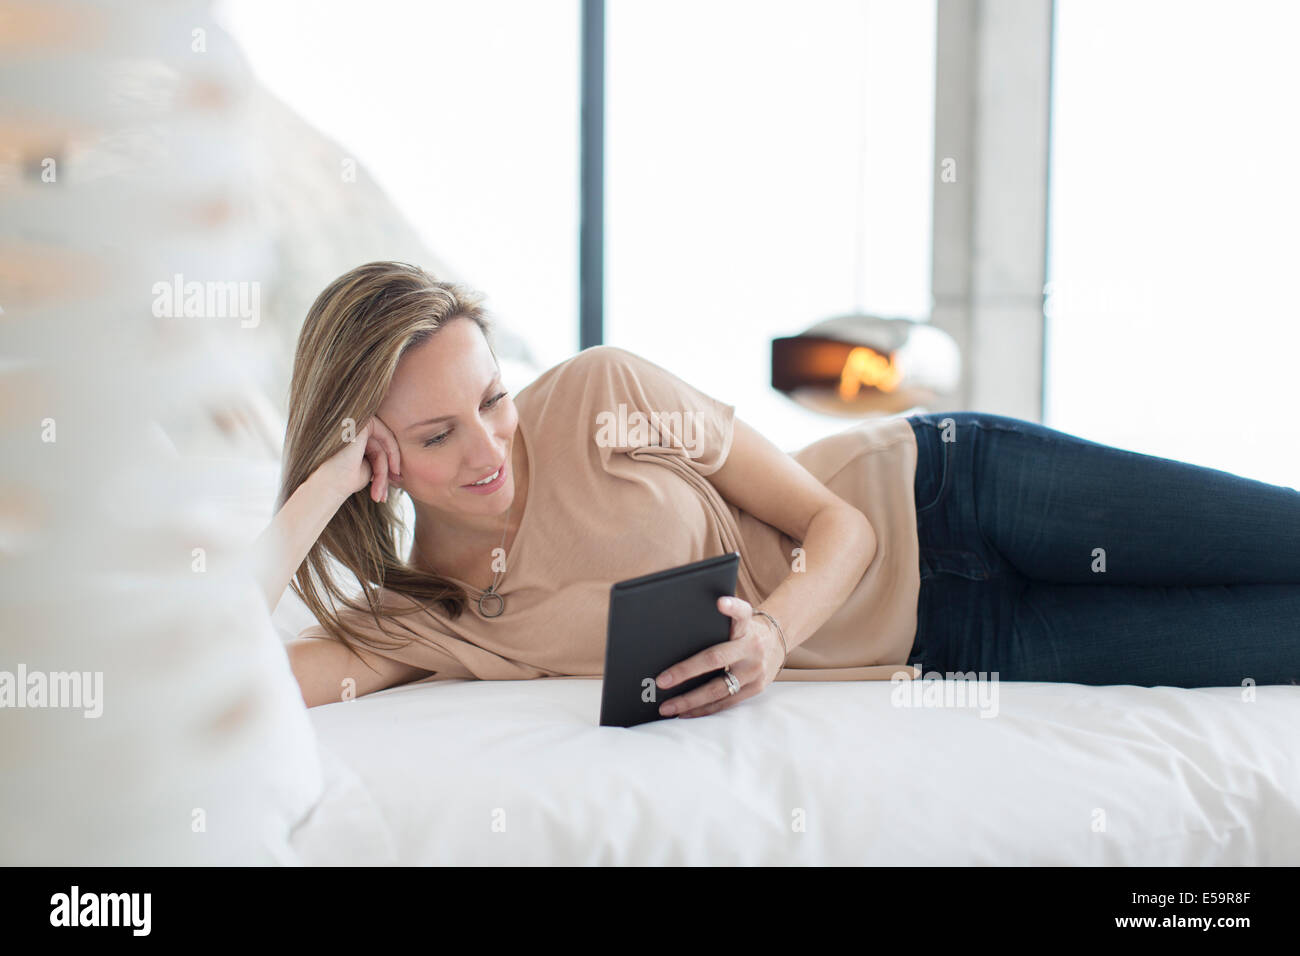 Woman using digital tablet on bed Photo Stock